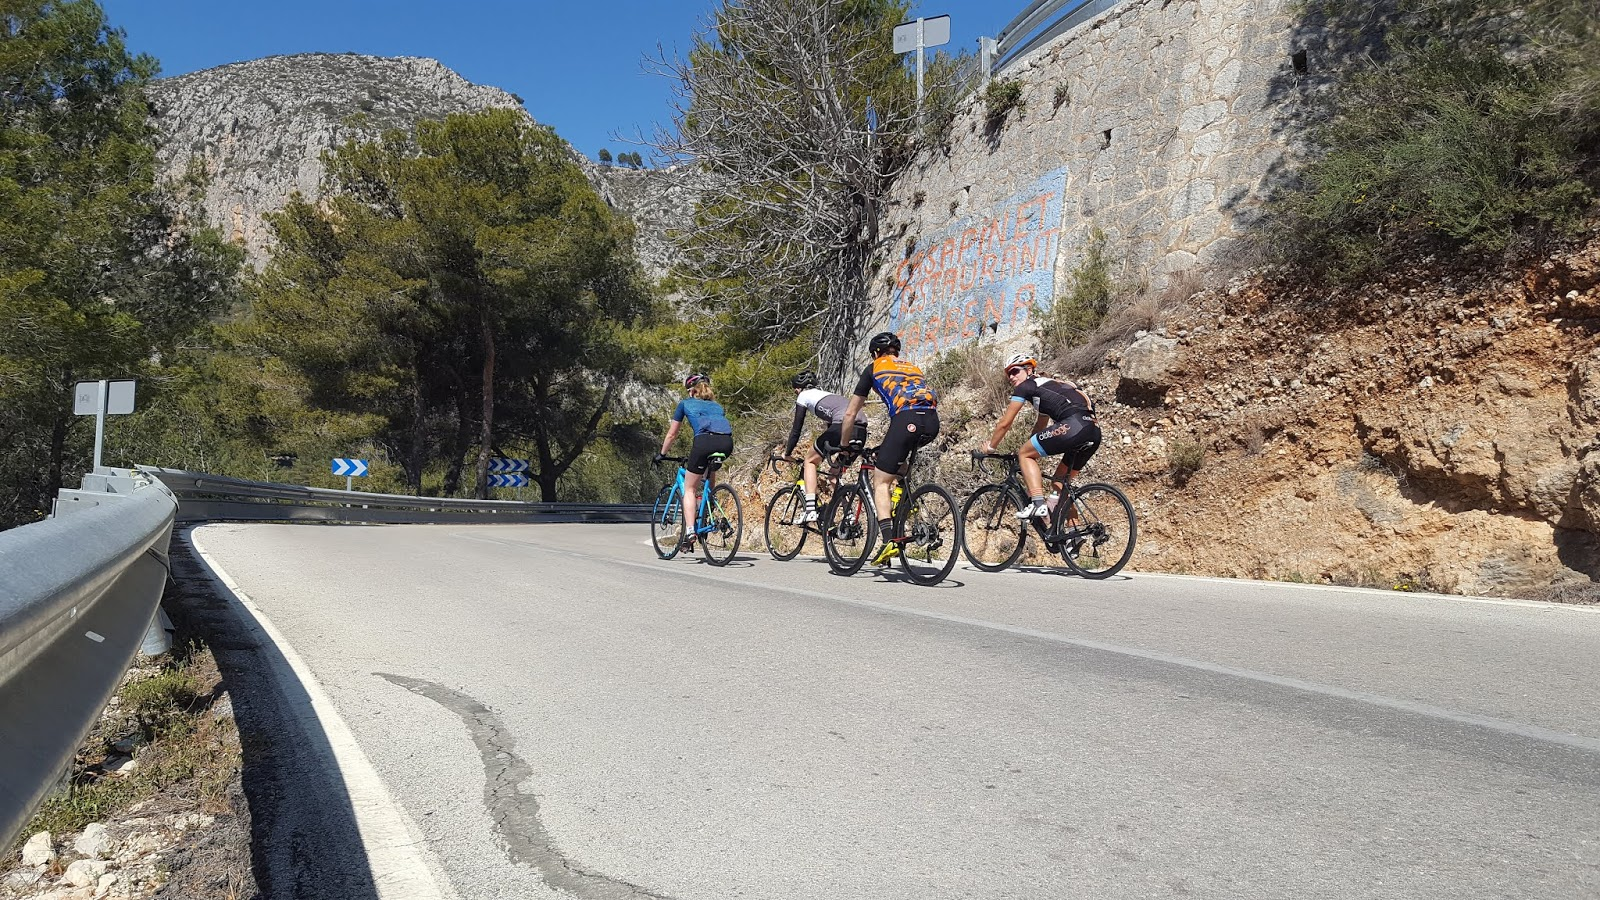 Group of cyclists climbing Coll de Rates from Callosa d'en Sarrià